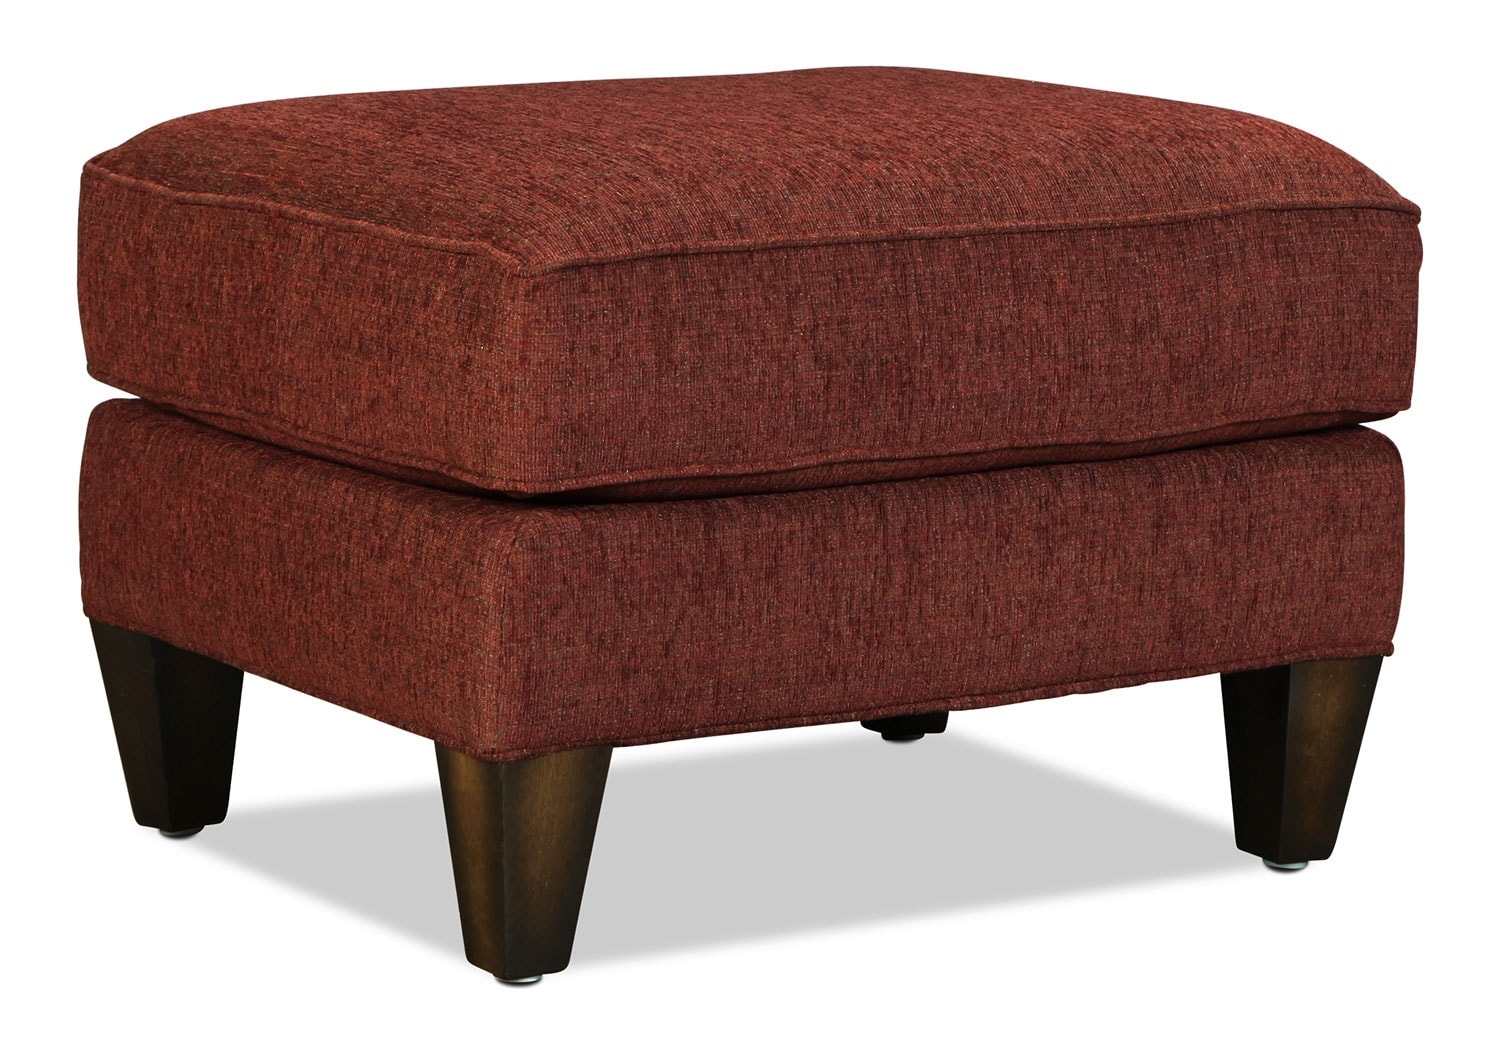 Sloan ottoman burgundy levin furniture for Levin furniture living room chairs